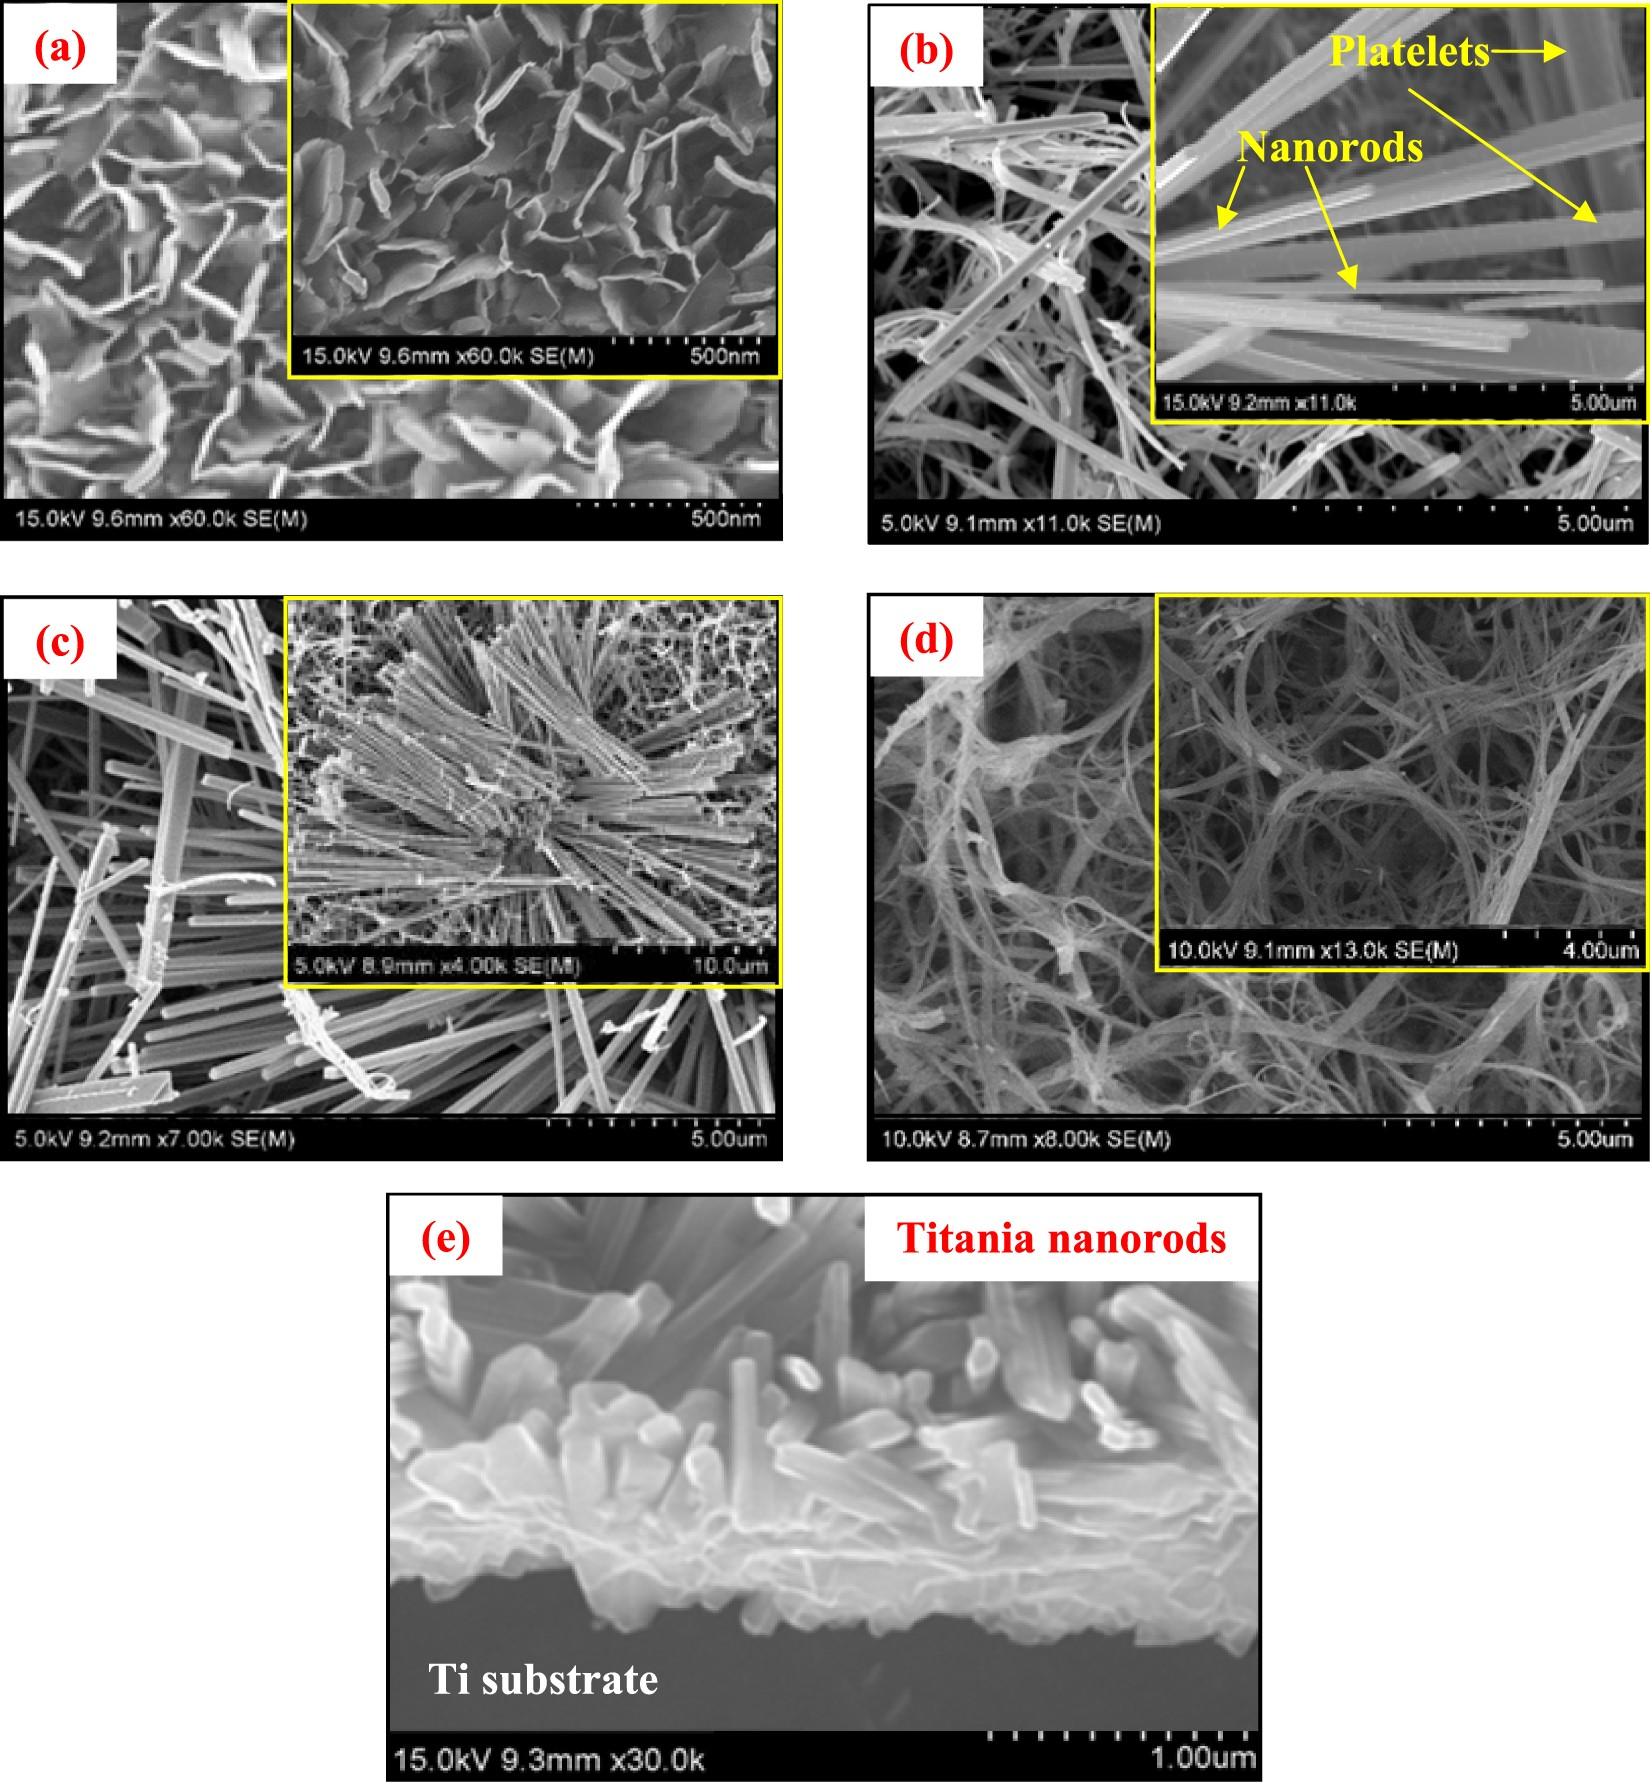 Improved electrochemical properties of morphology controlled titania titanate nanostructures prepared by in situ hydrothermal surface modification of